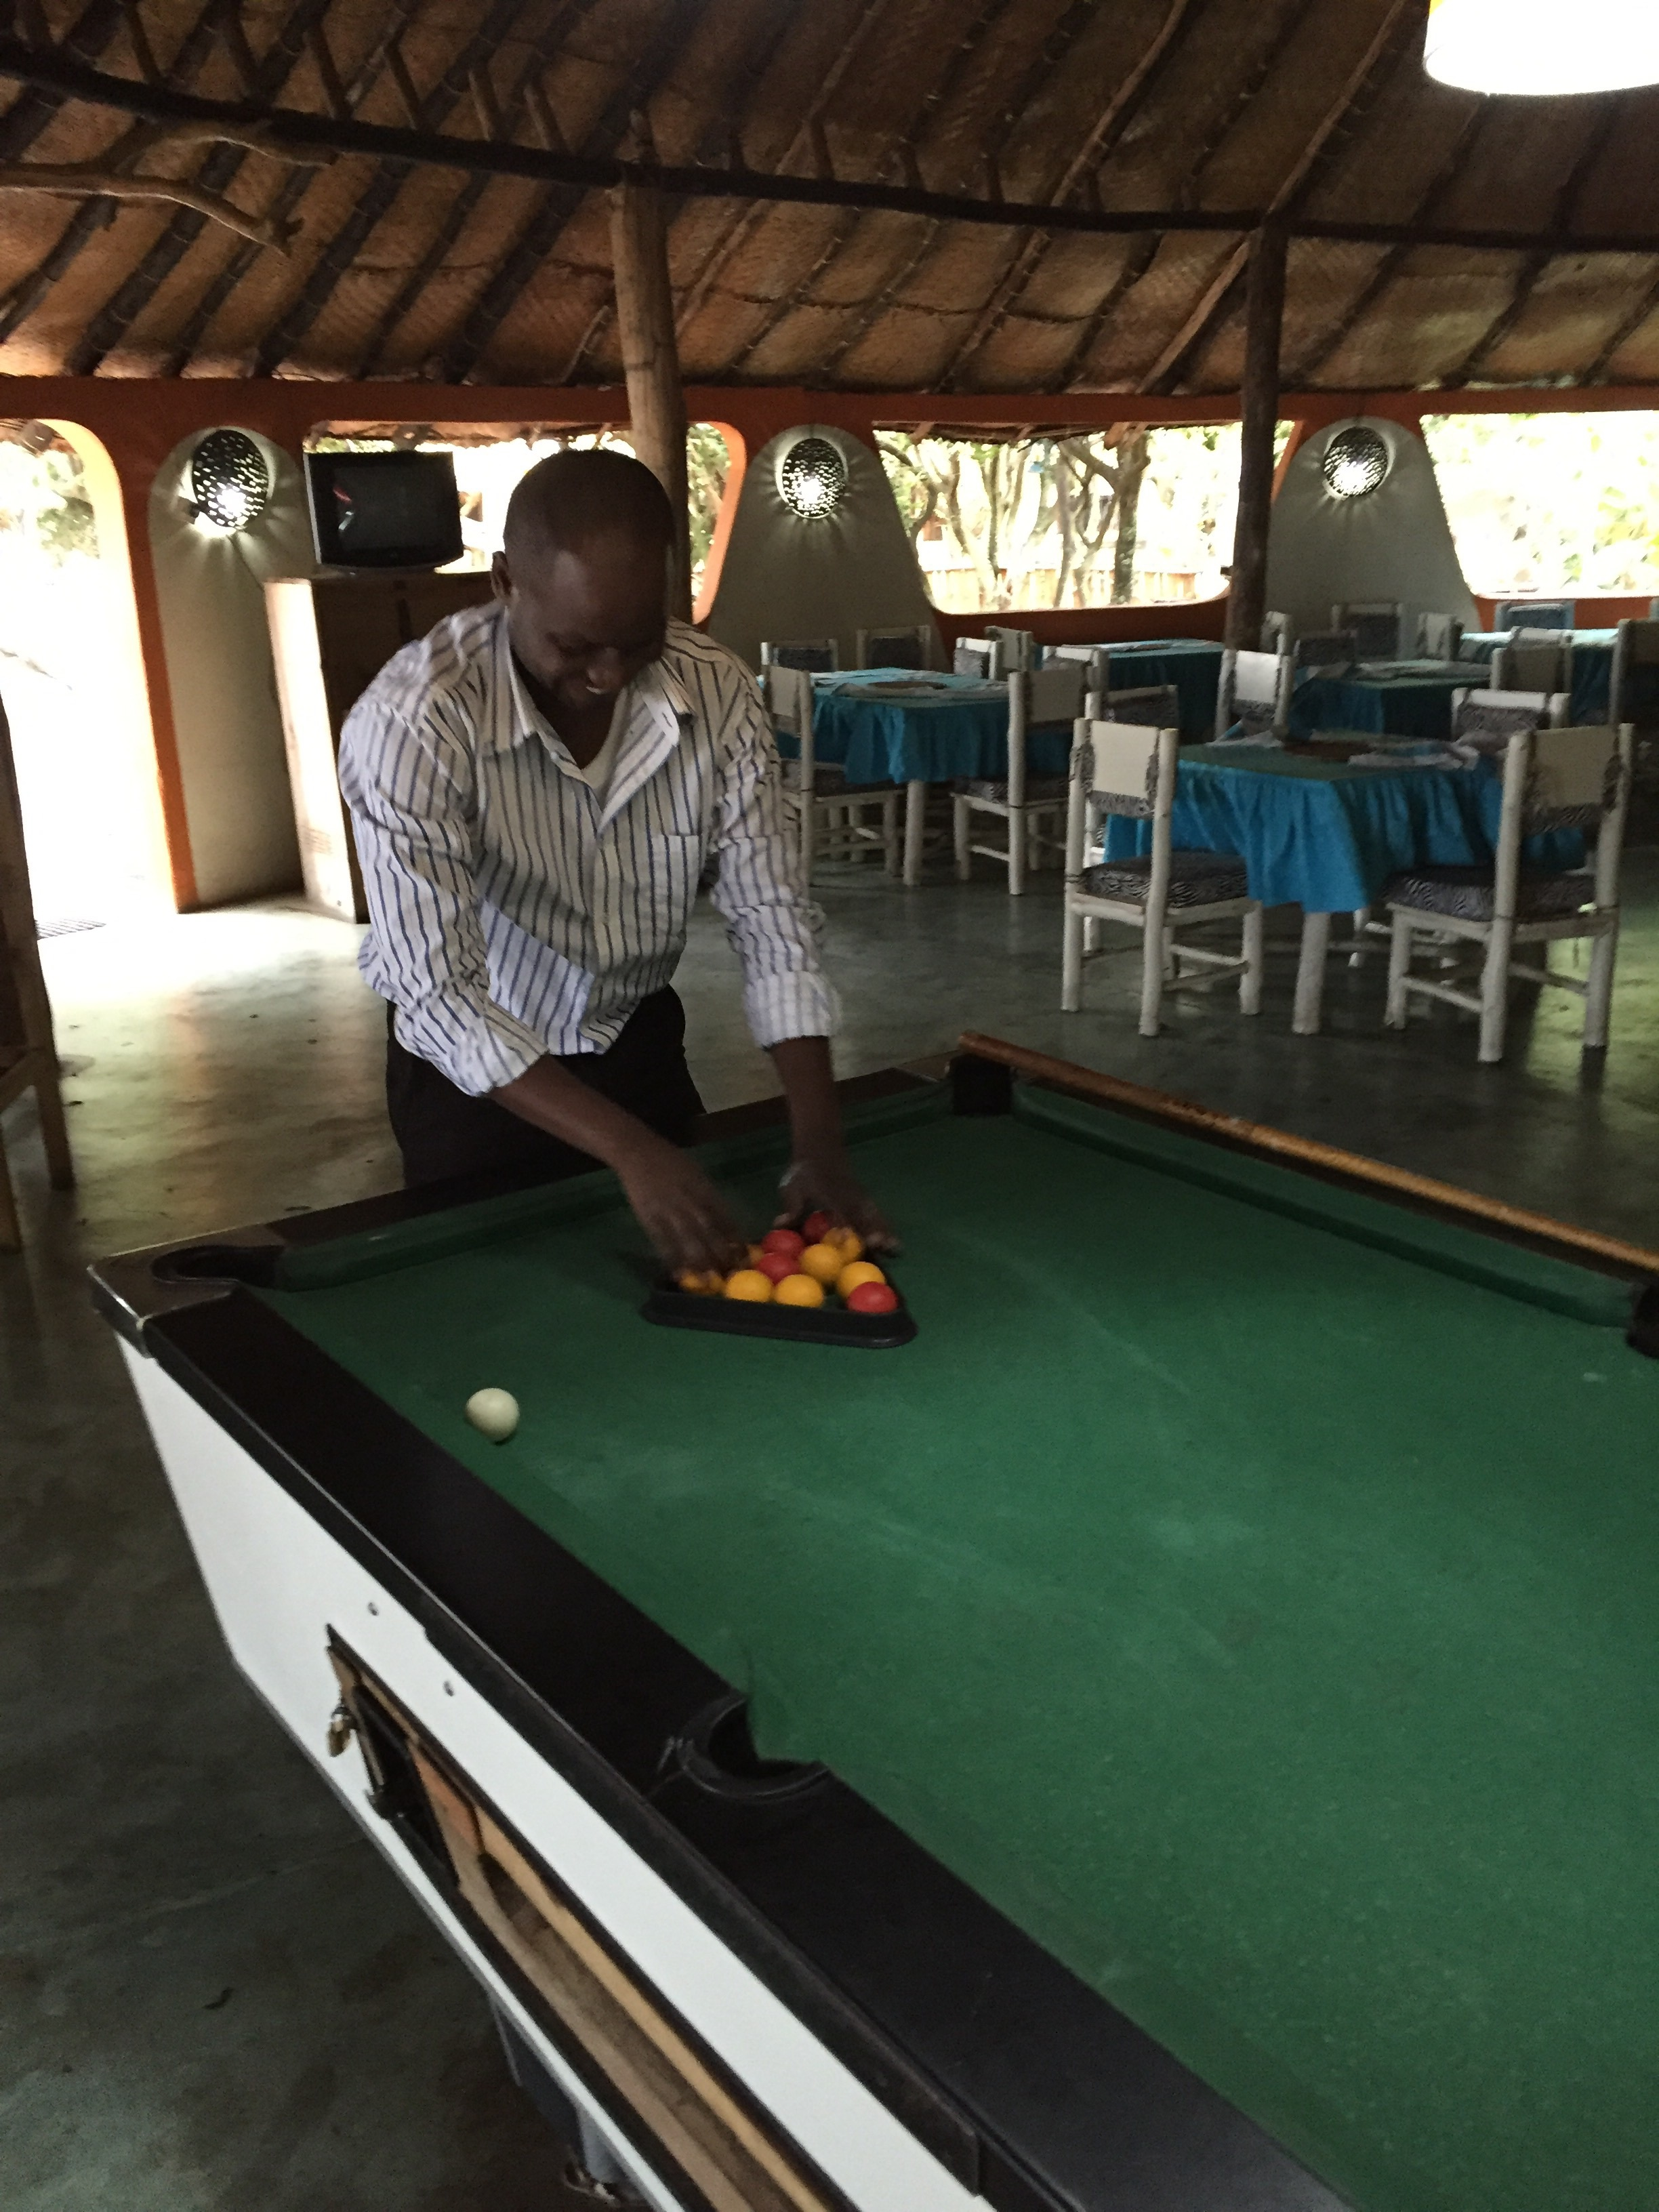 Pool. The preferred game of locals. Unfortunately for this local, home table advantage didn't work. JG 2, Edwin 1.